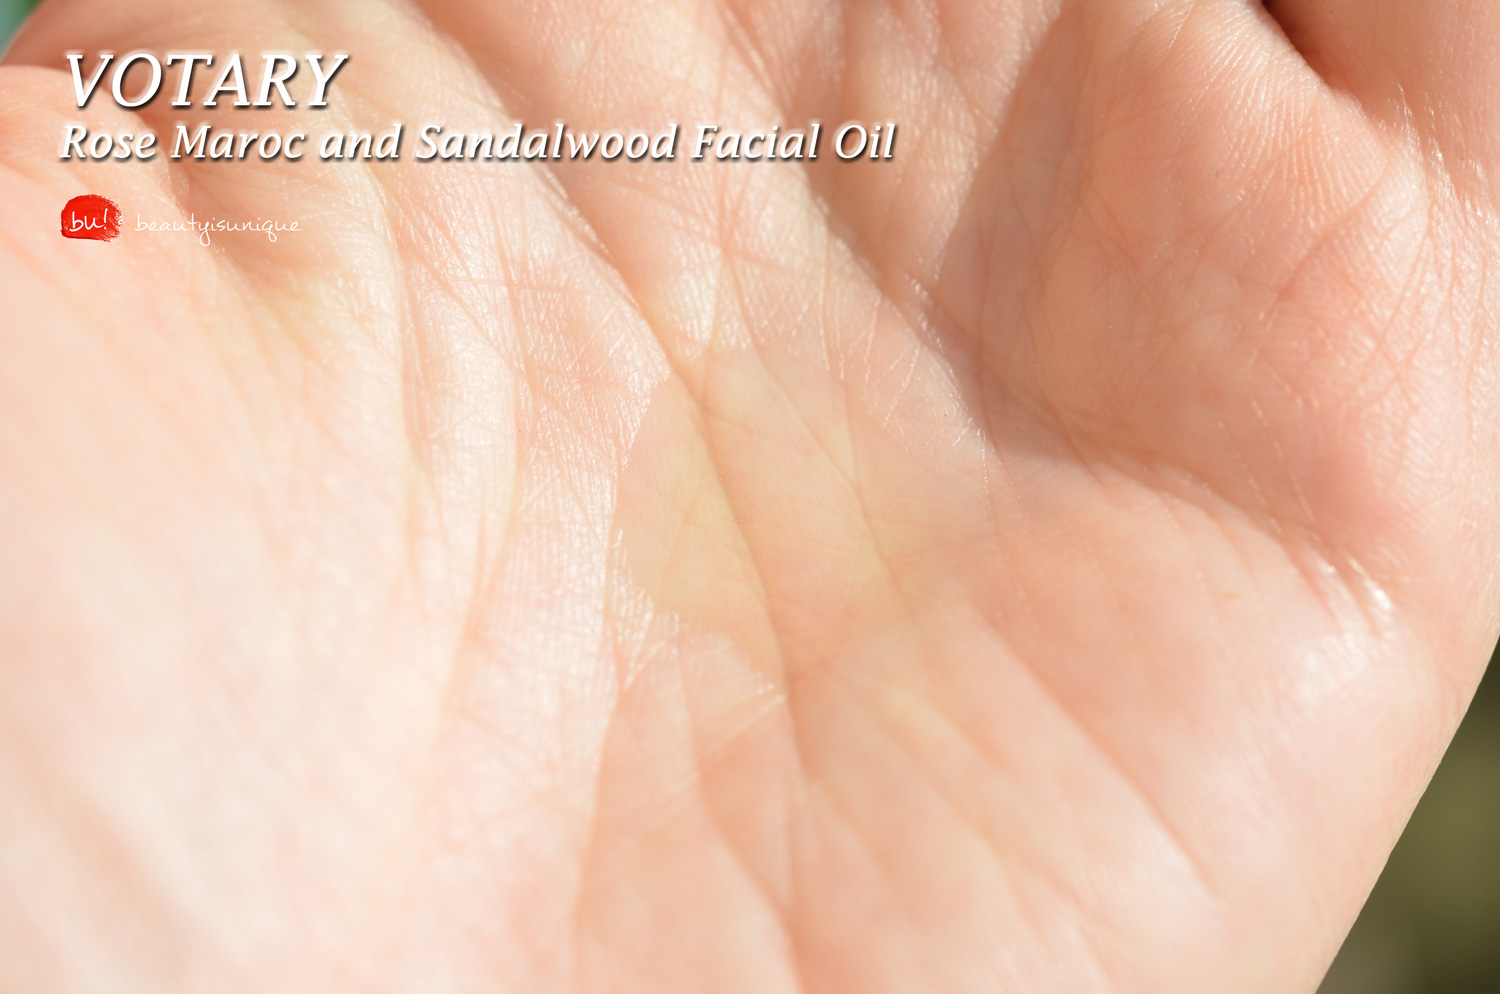 votary-facial-oil-rose-maroc-and-sandalwood-review